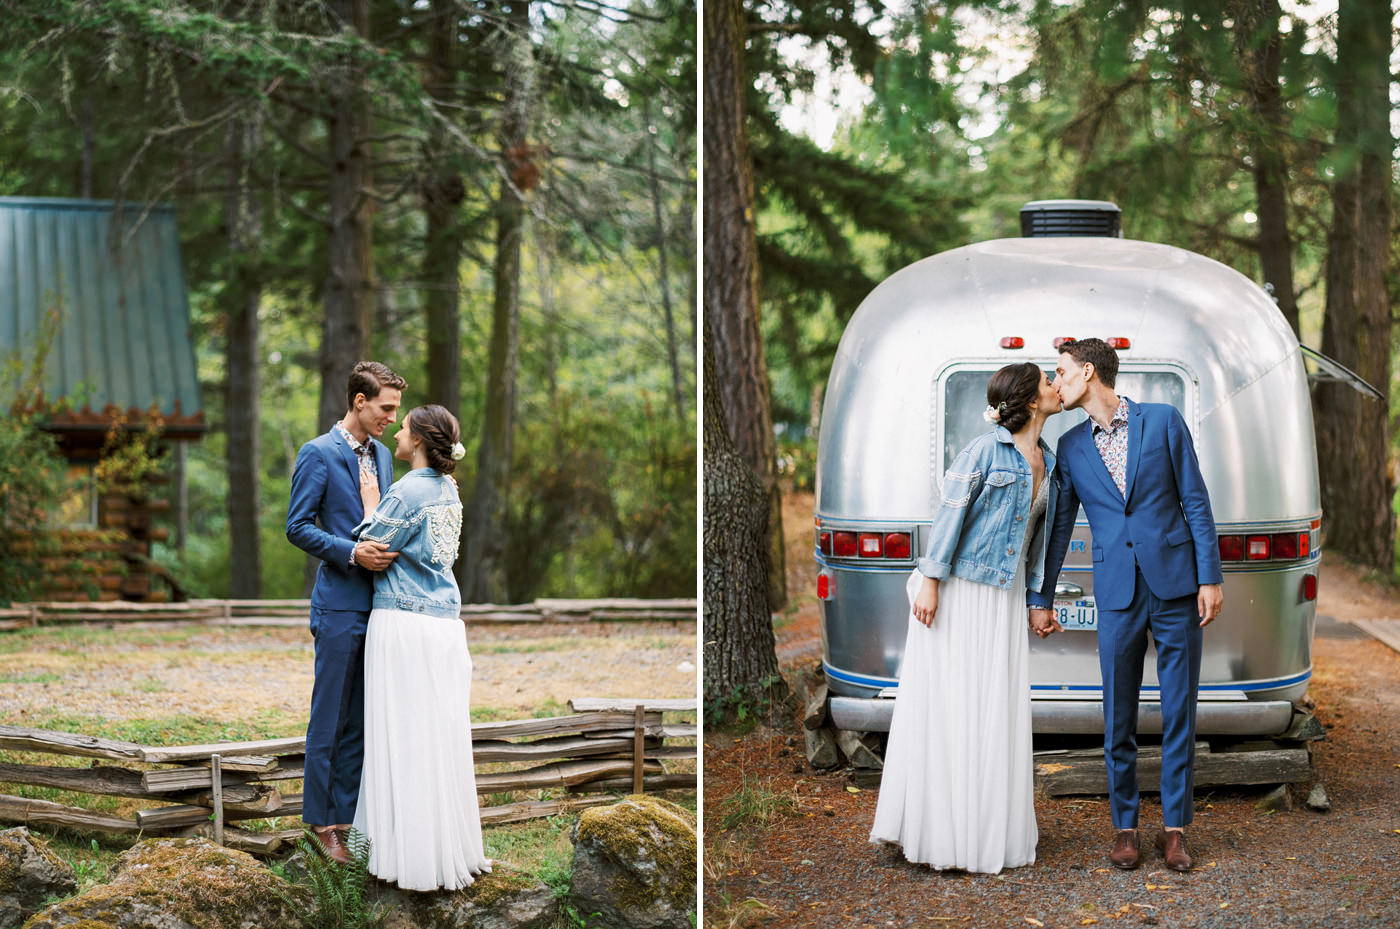 169-pacific-northwest-wedding-photography-by-ryan-flynn.jpg